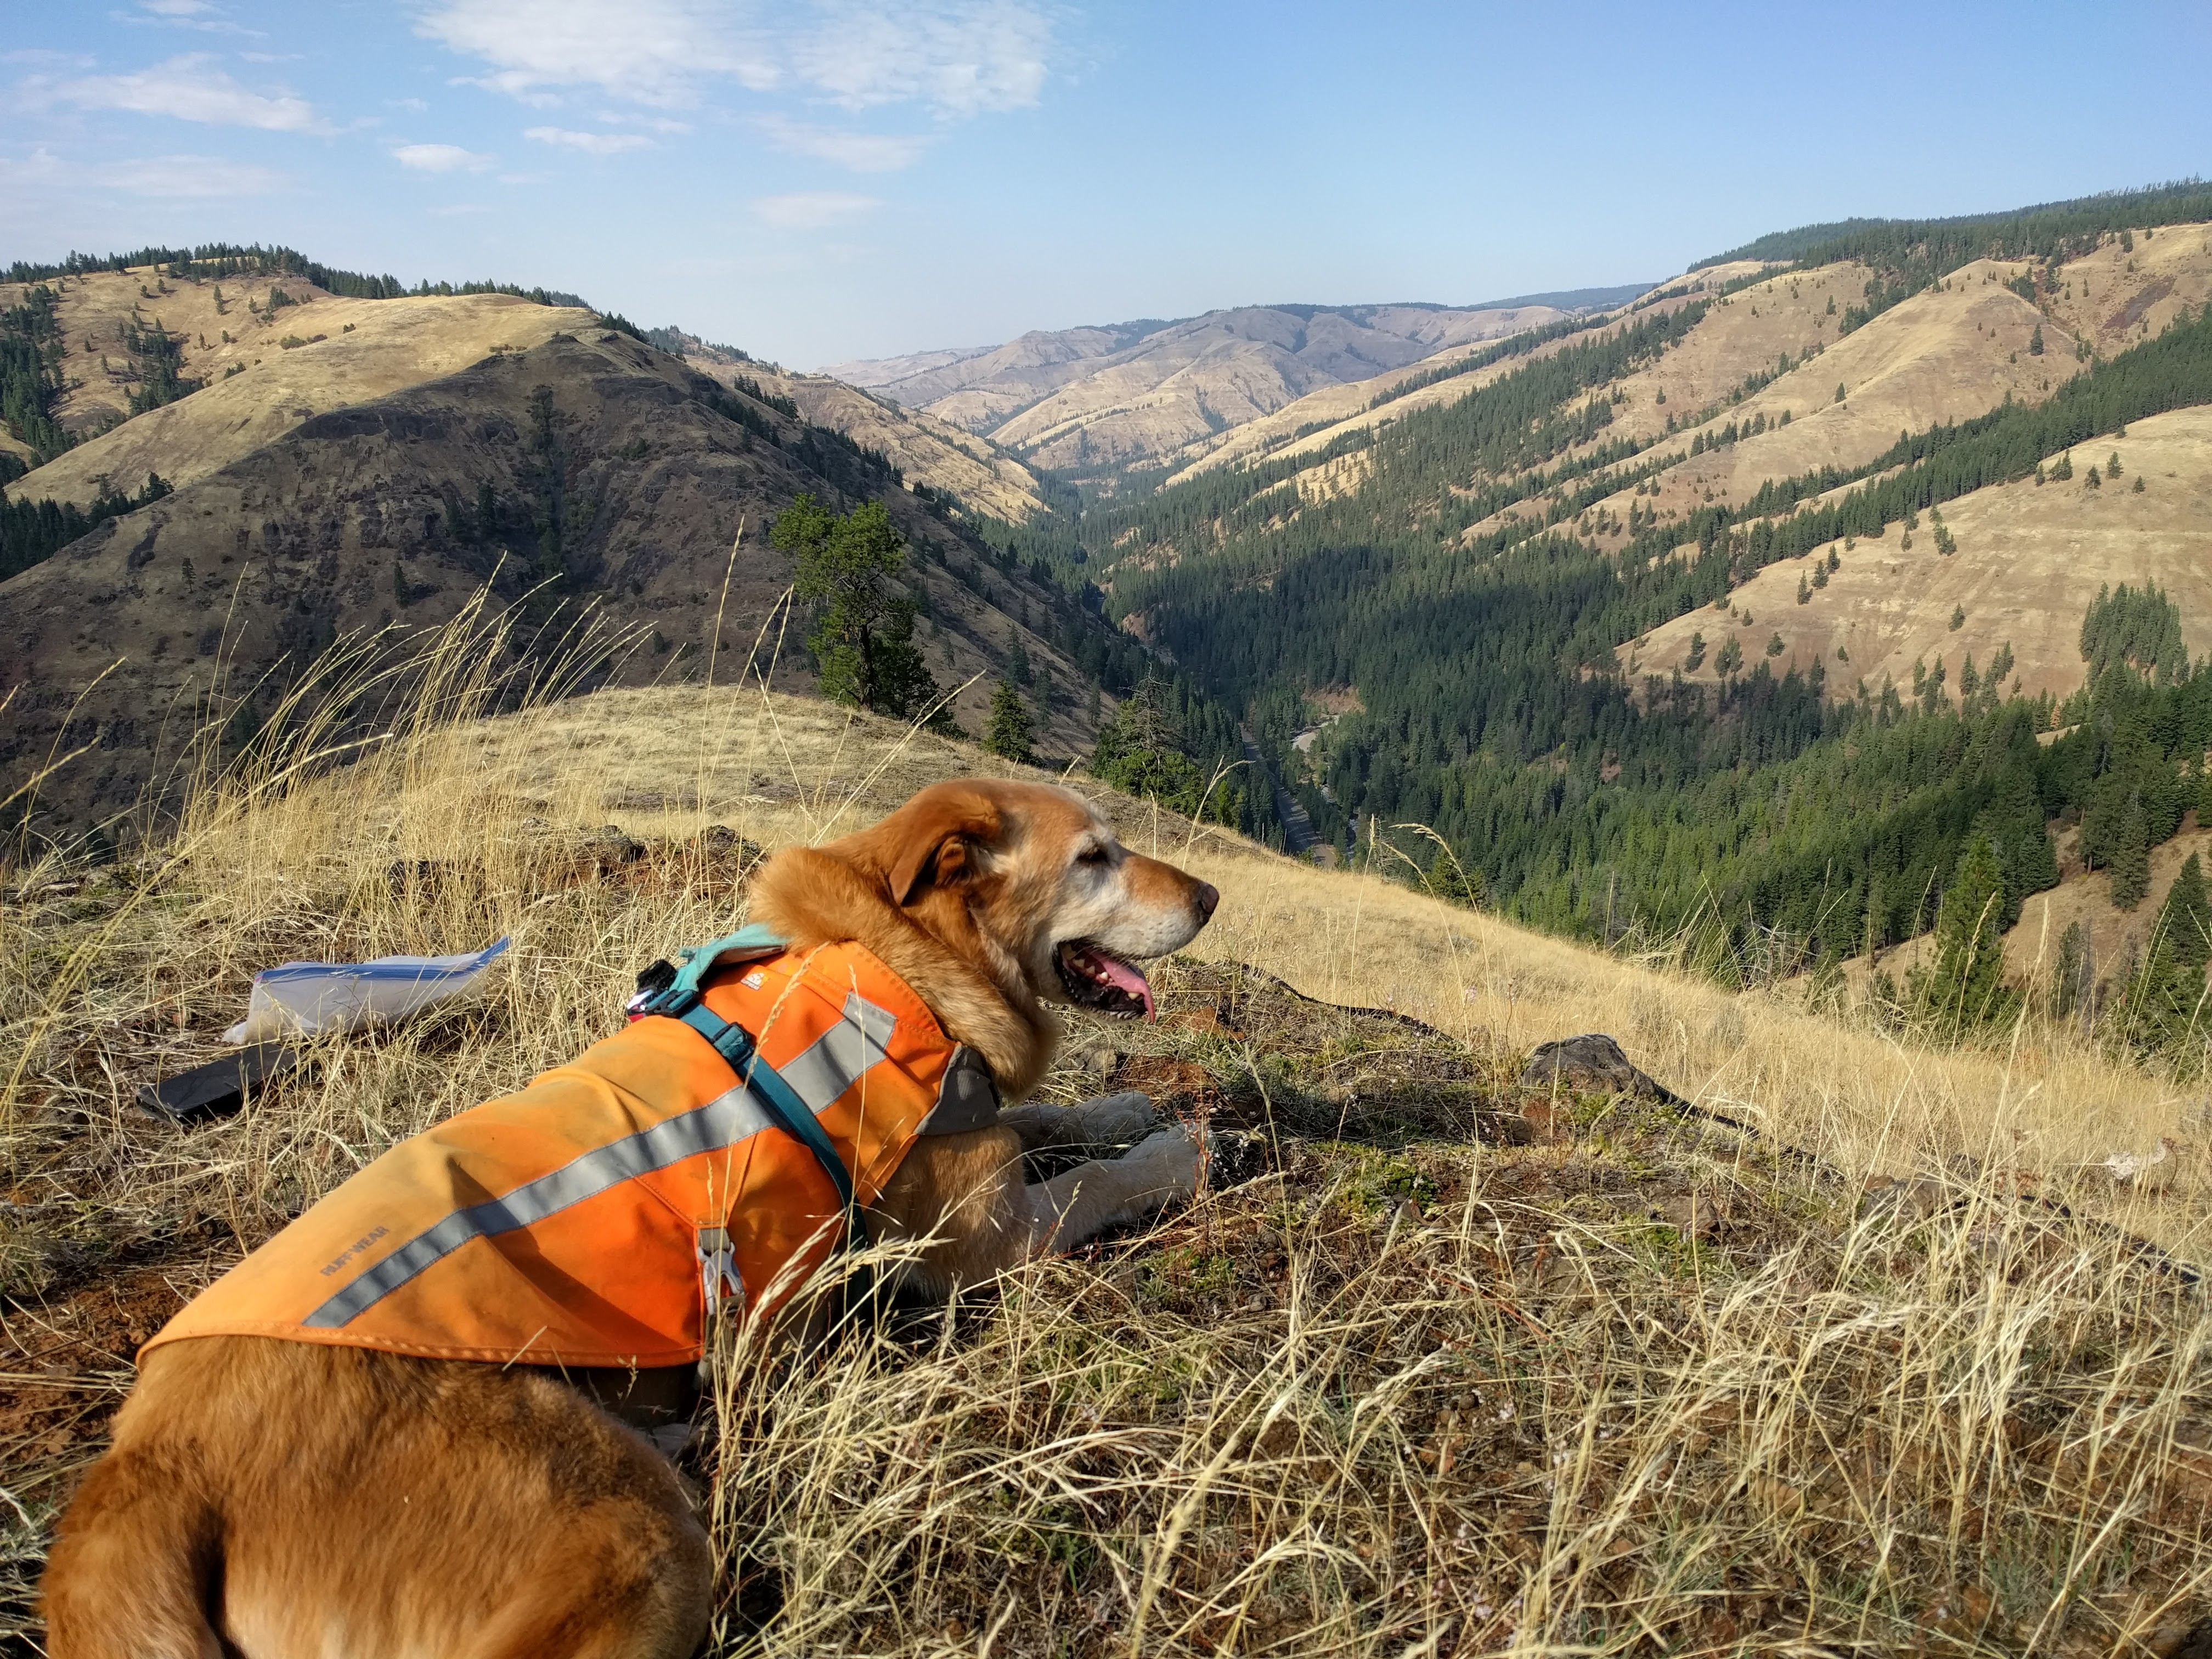 Yellow Lab lays in grass on top of hill with mountains in distance